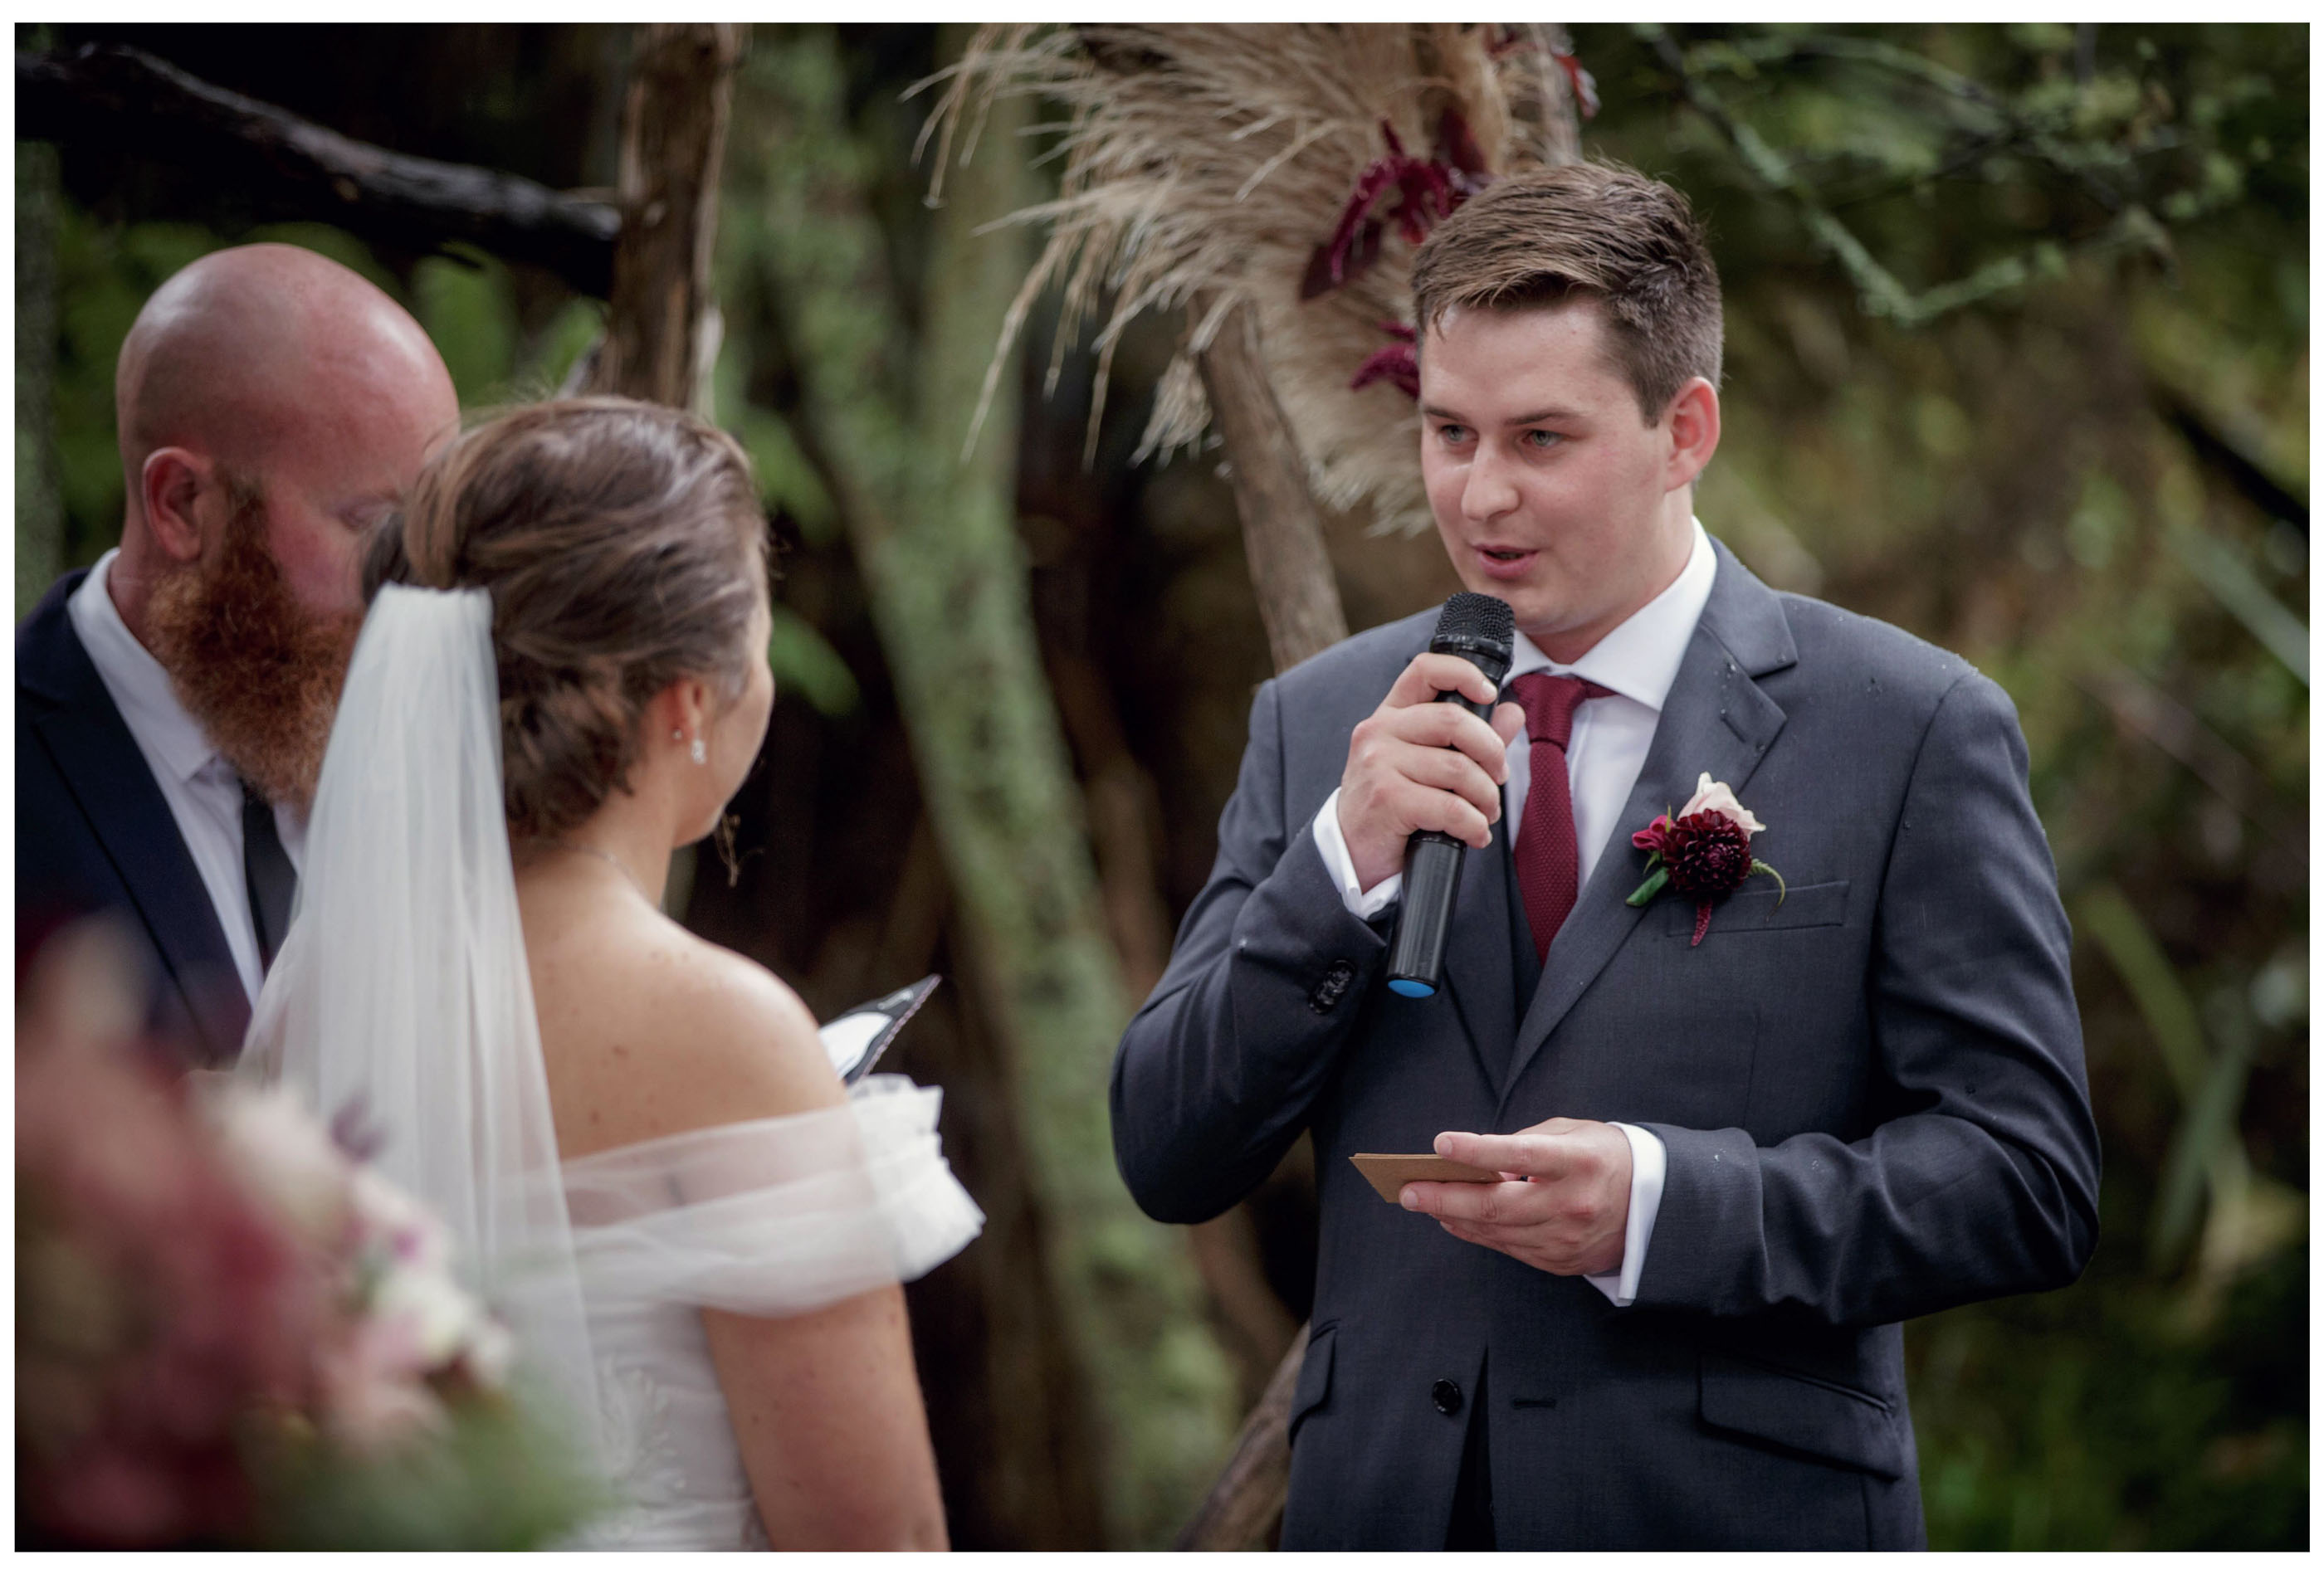 Groom makes wedding vows at outdoor woodland wedding Kumeu